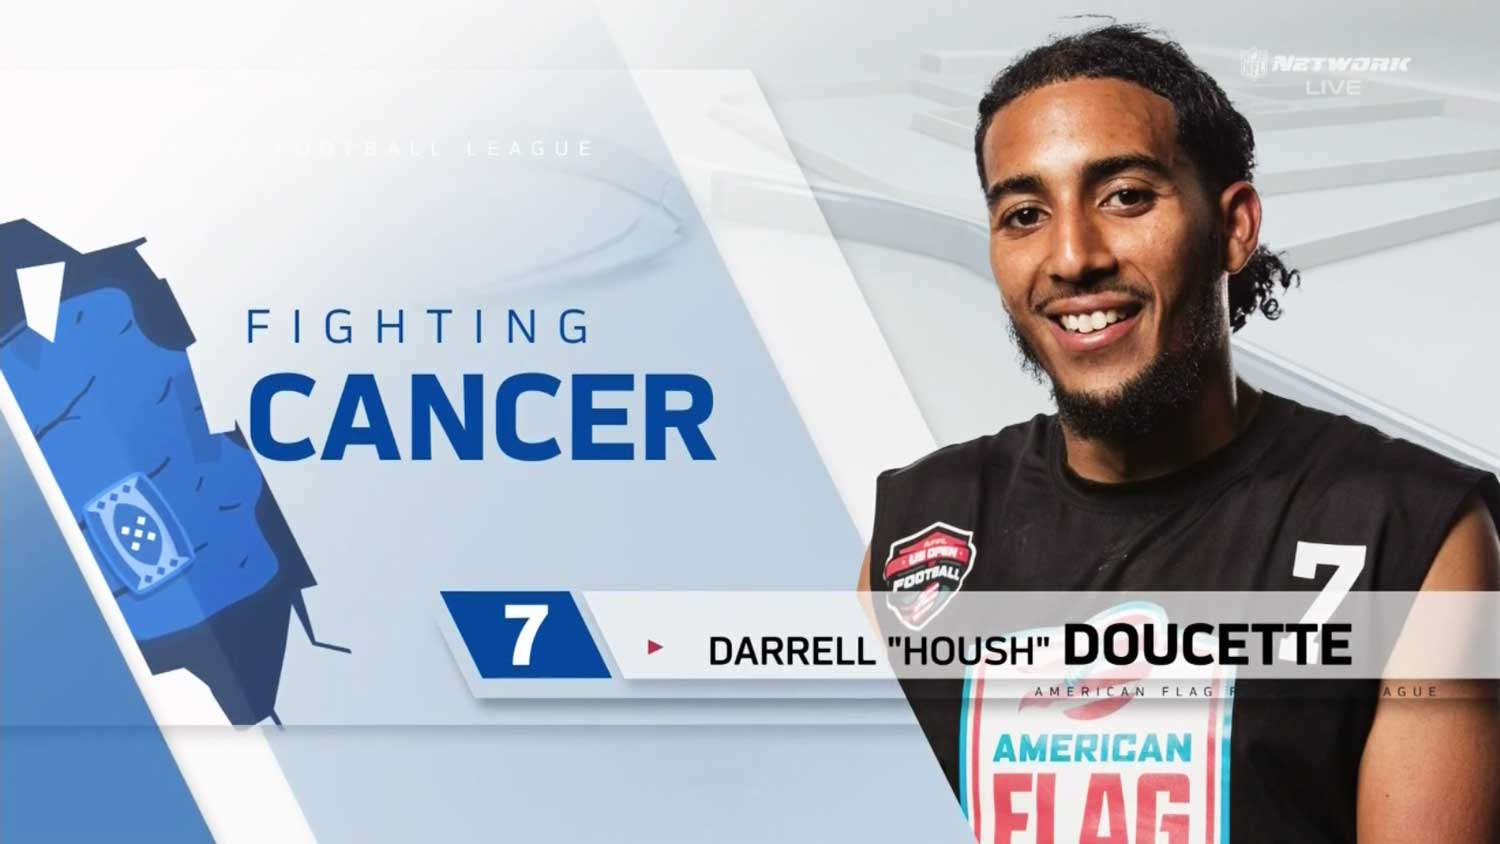 Graphics_AFFL_FightingCancer_Doucette